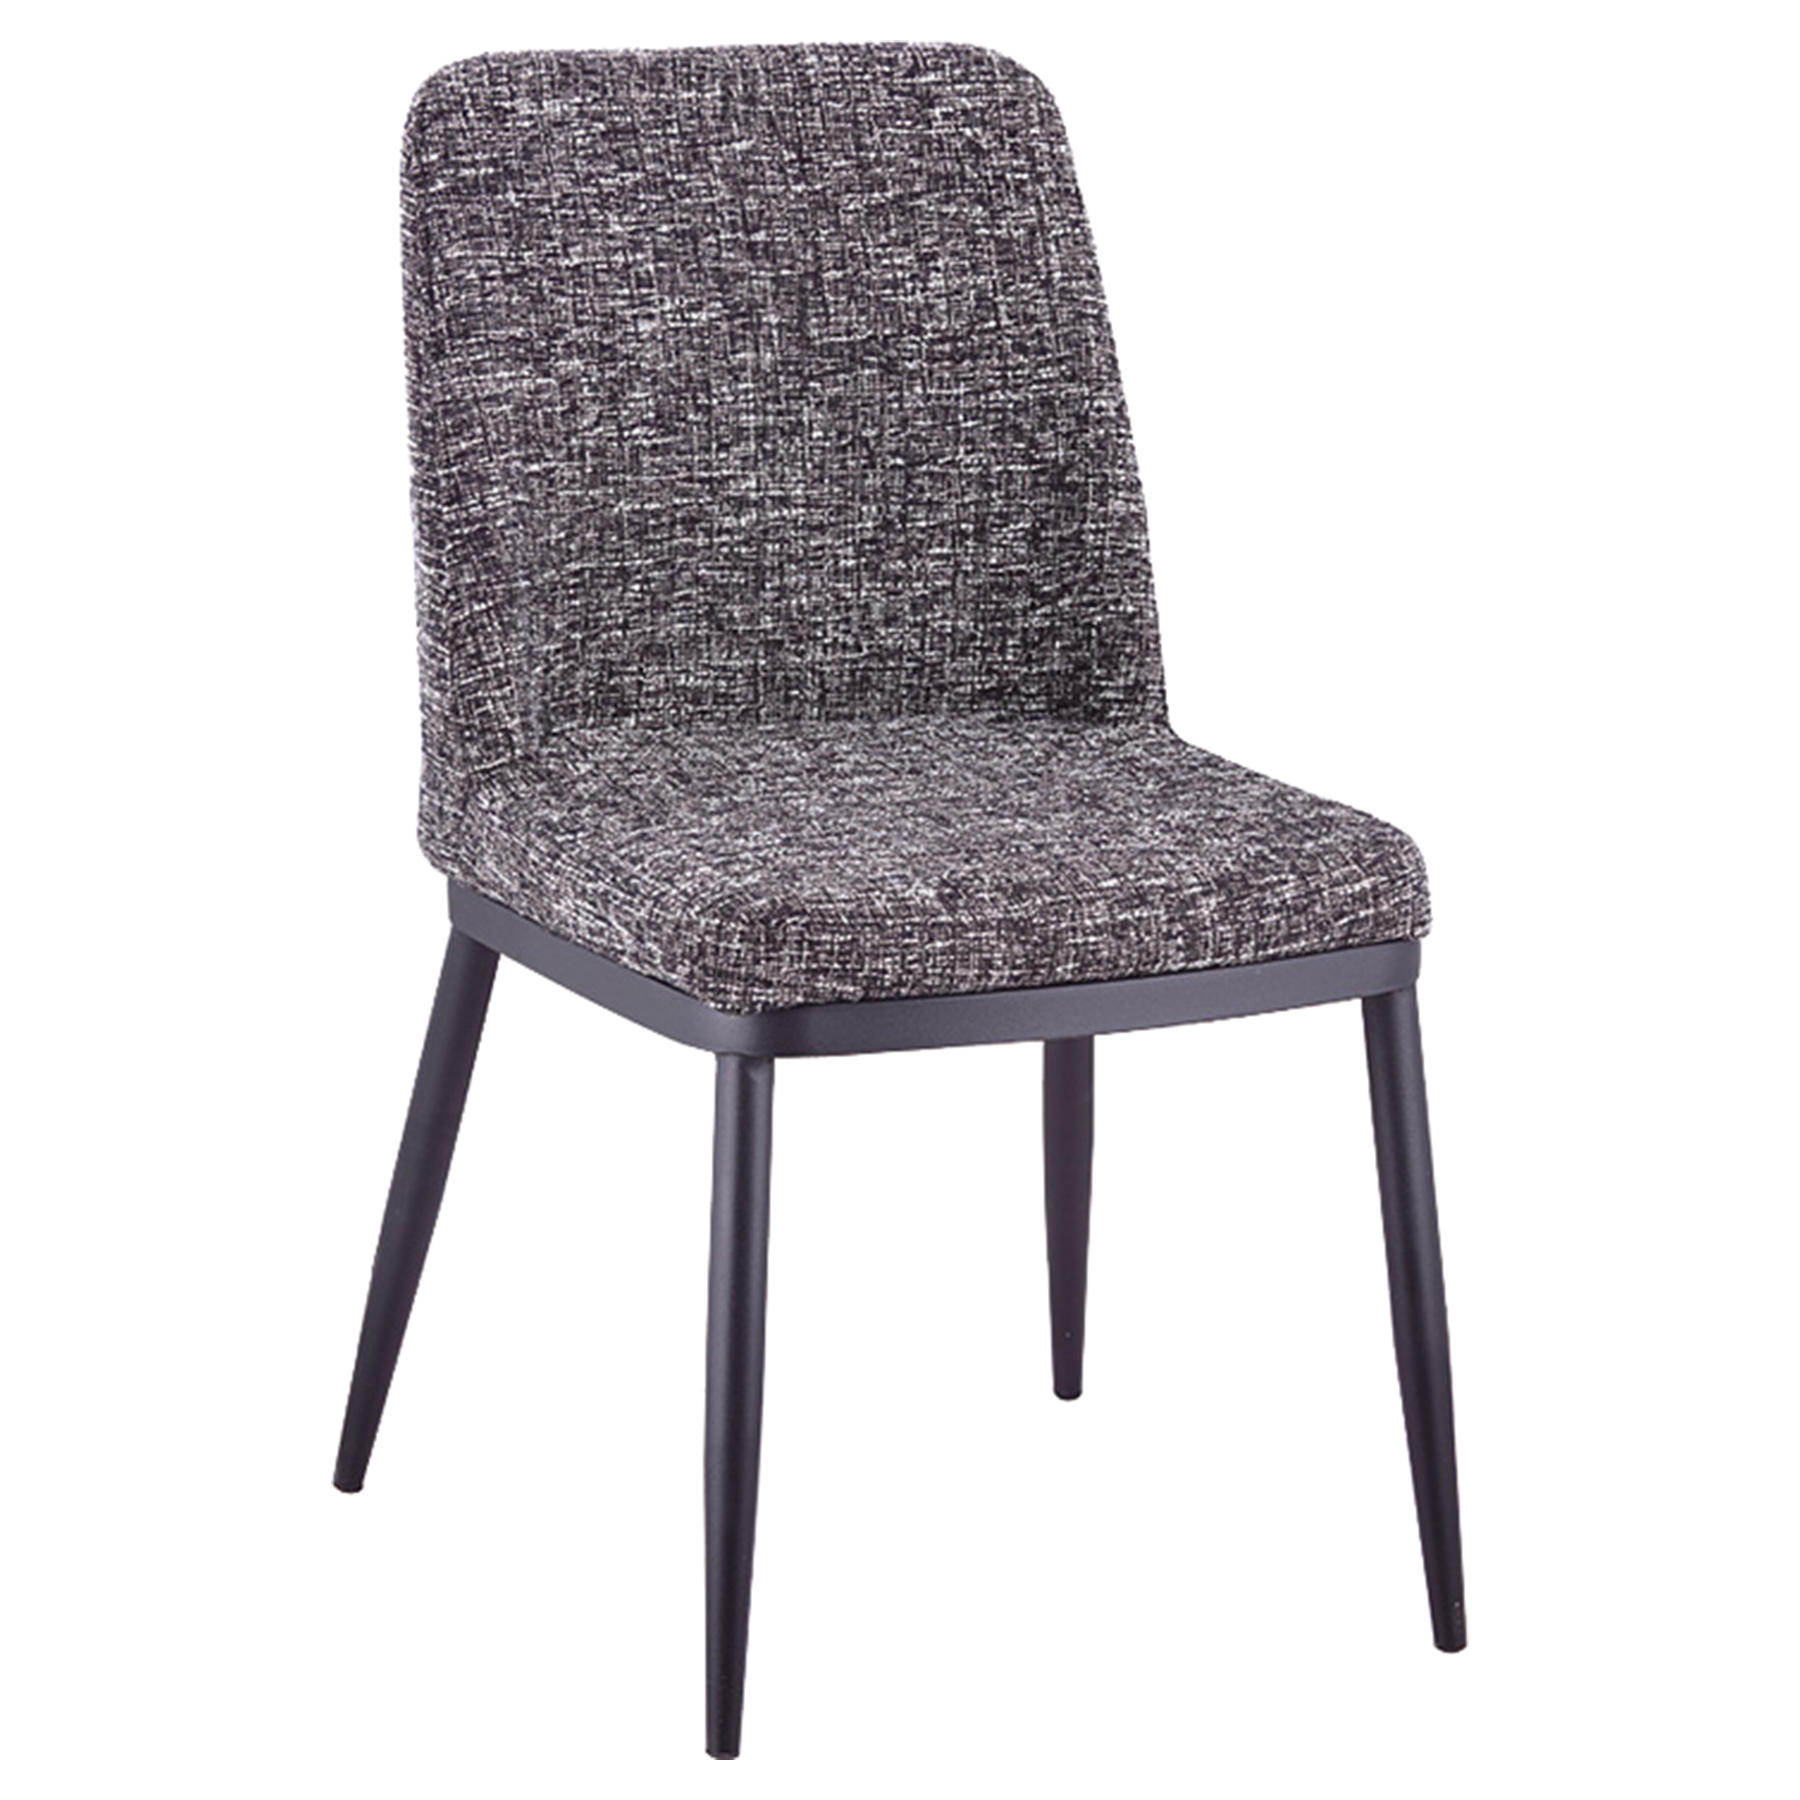 Tempo Dining Chair - Brown (Set of 2)